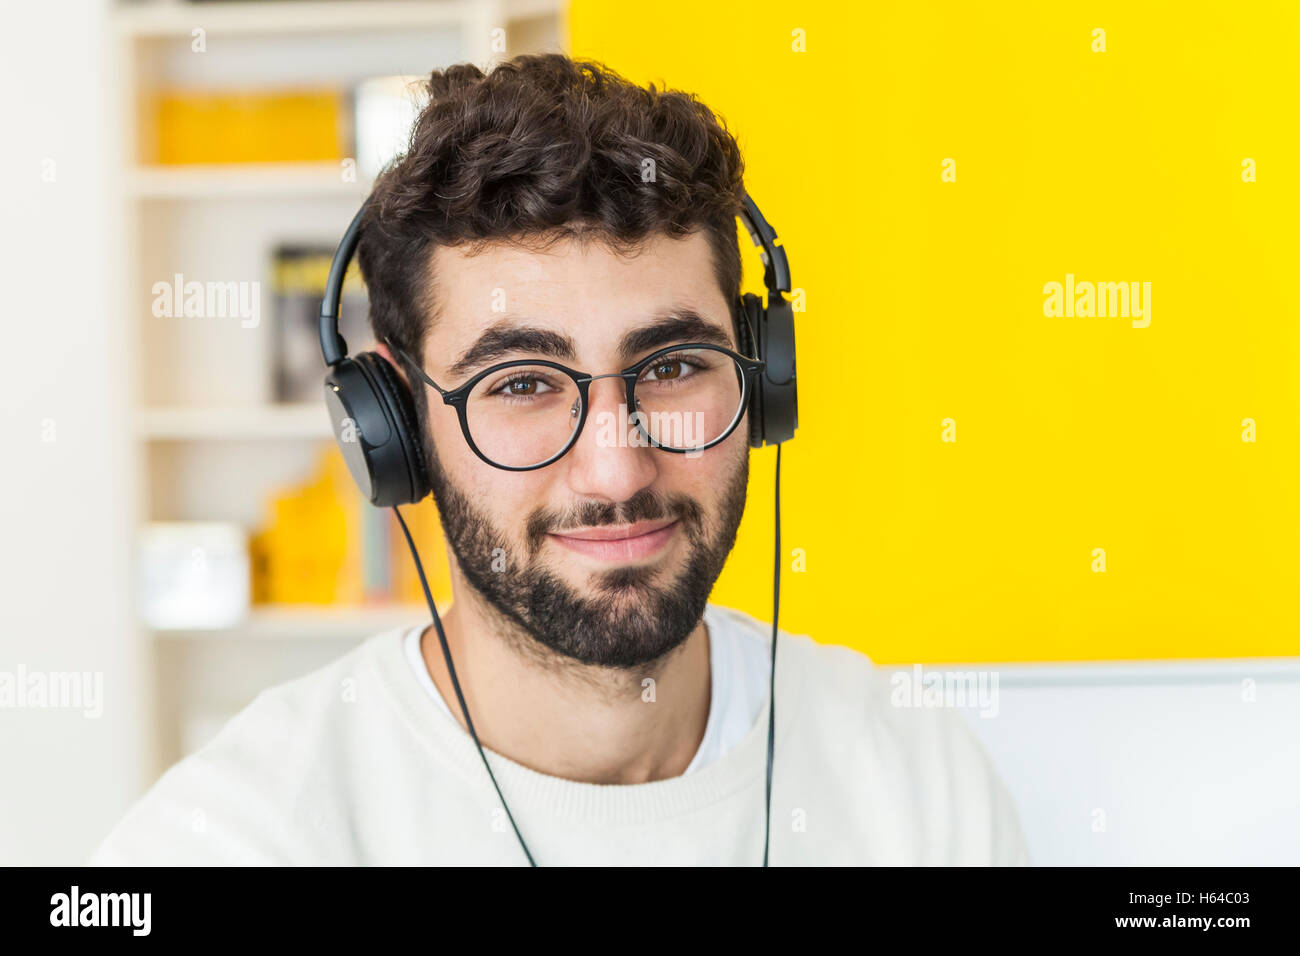 Portrait of smiling man with glasses and headphones - Stock Image